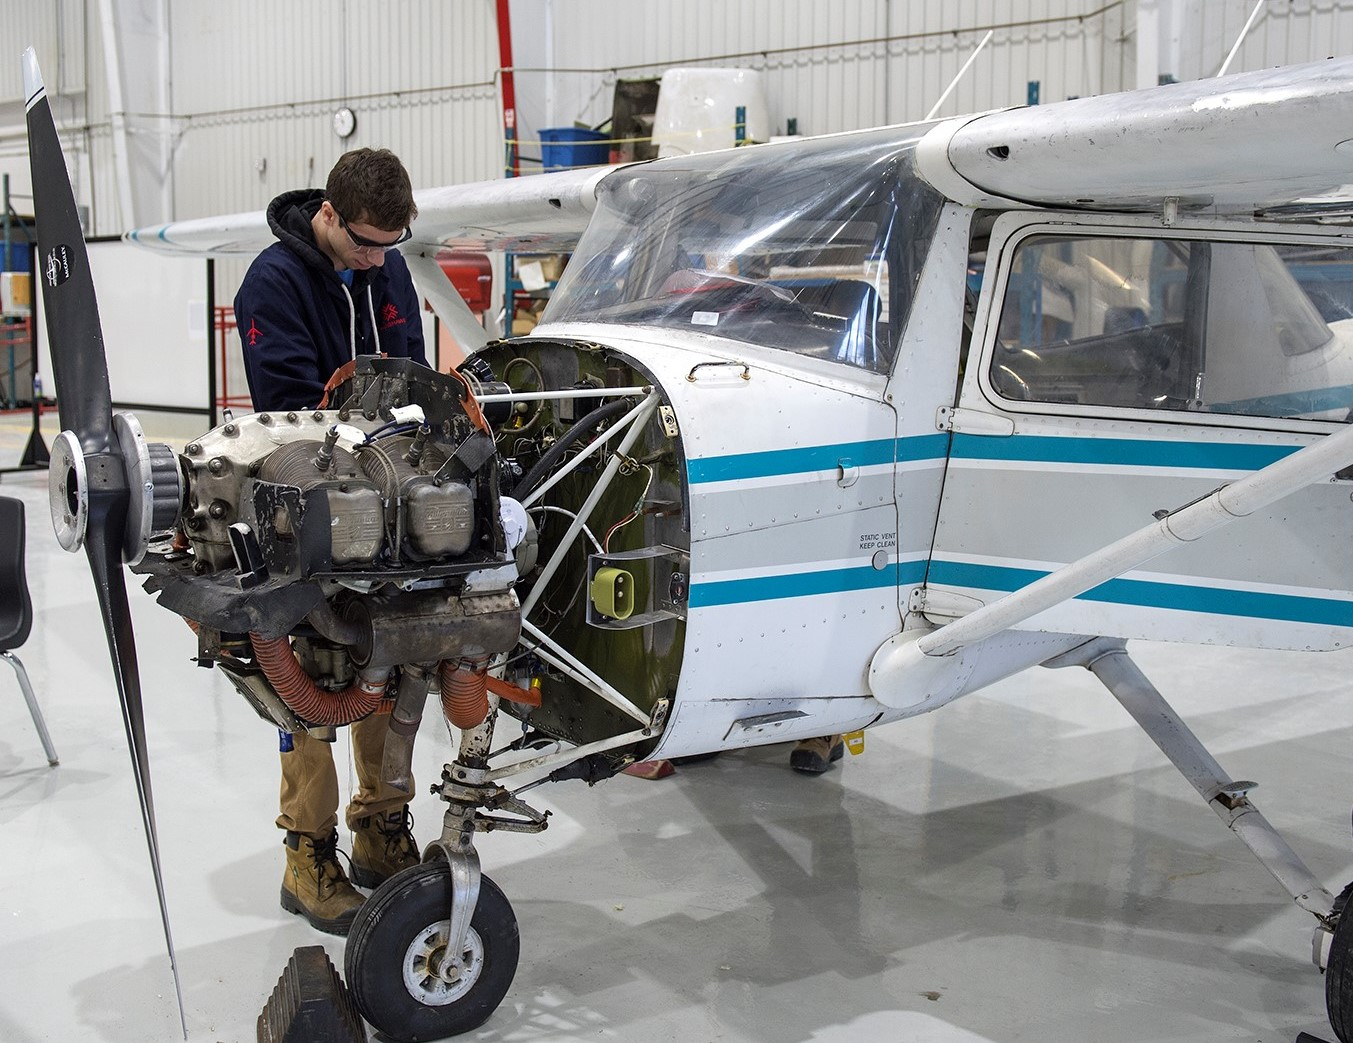 A student and instructor review documents at the maintenance hangar